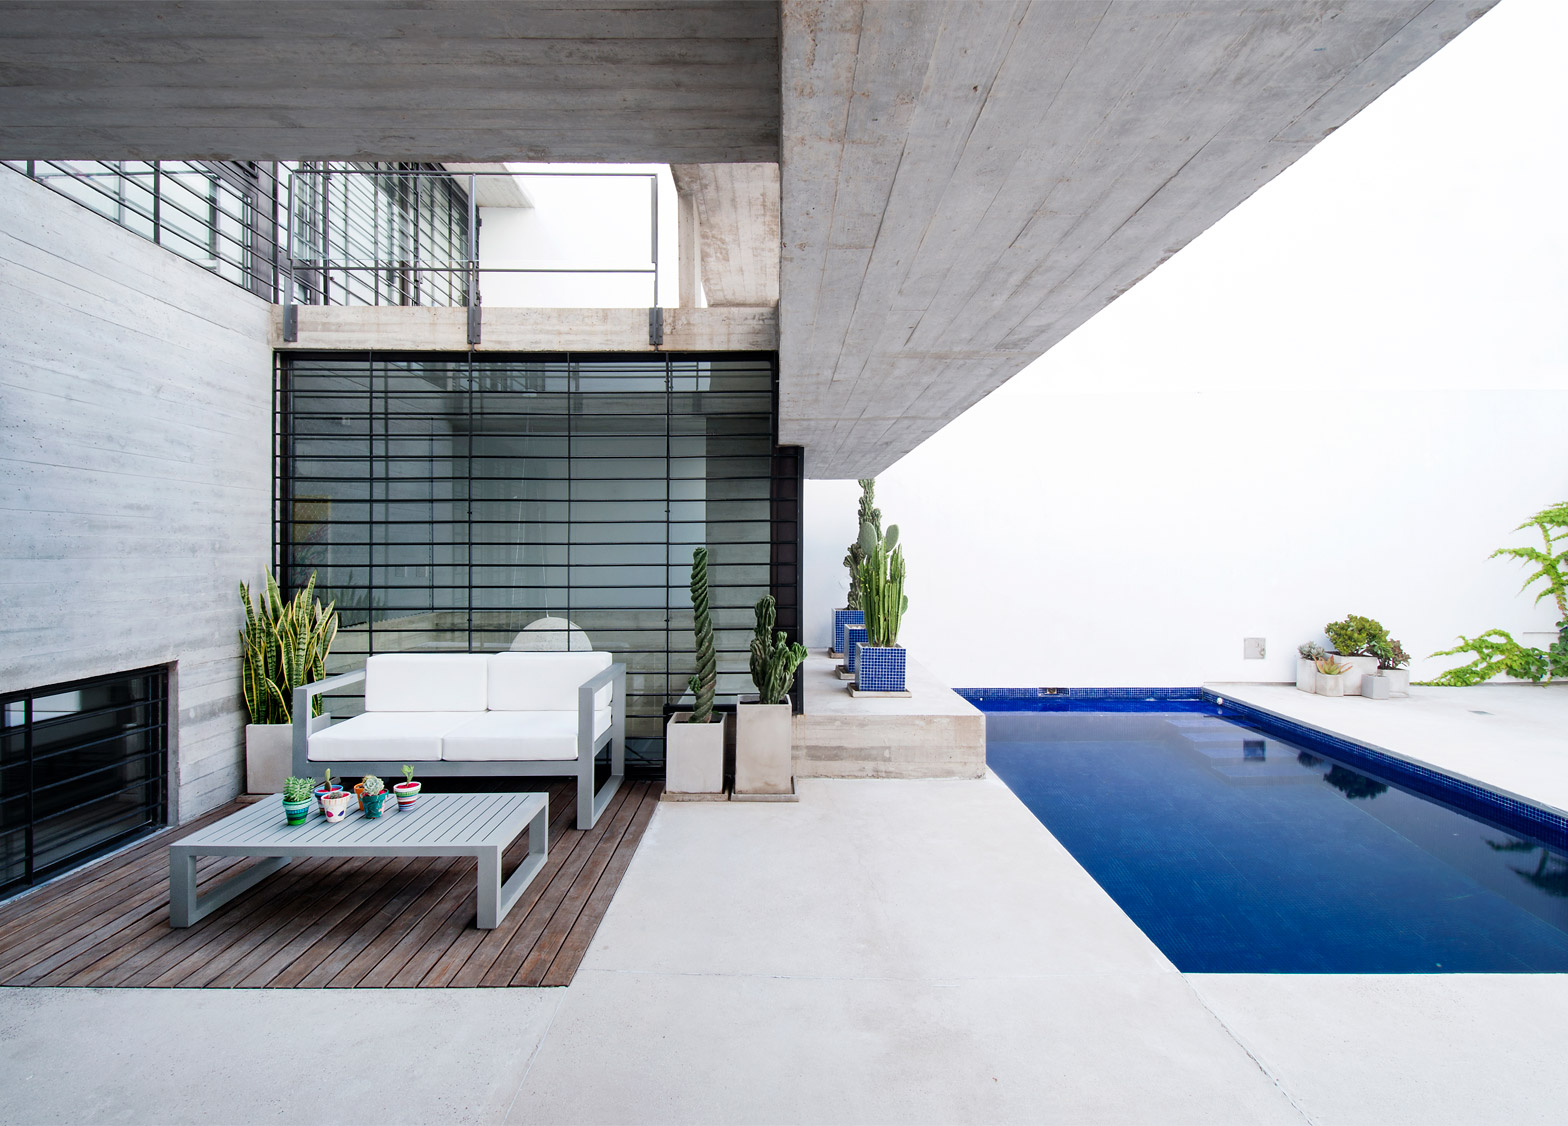 9 Of 25; Two Houses Conesa By Luciano Kruk